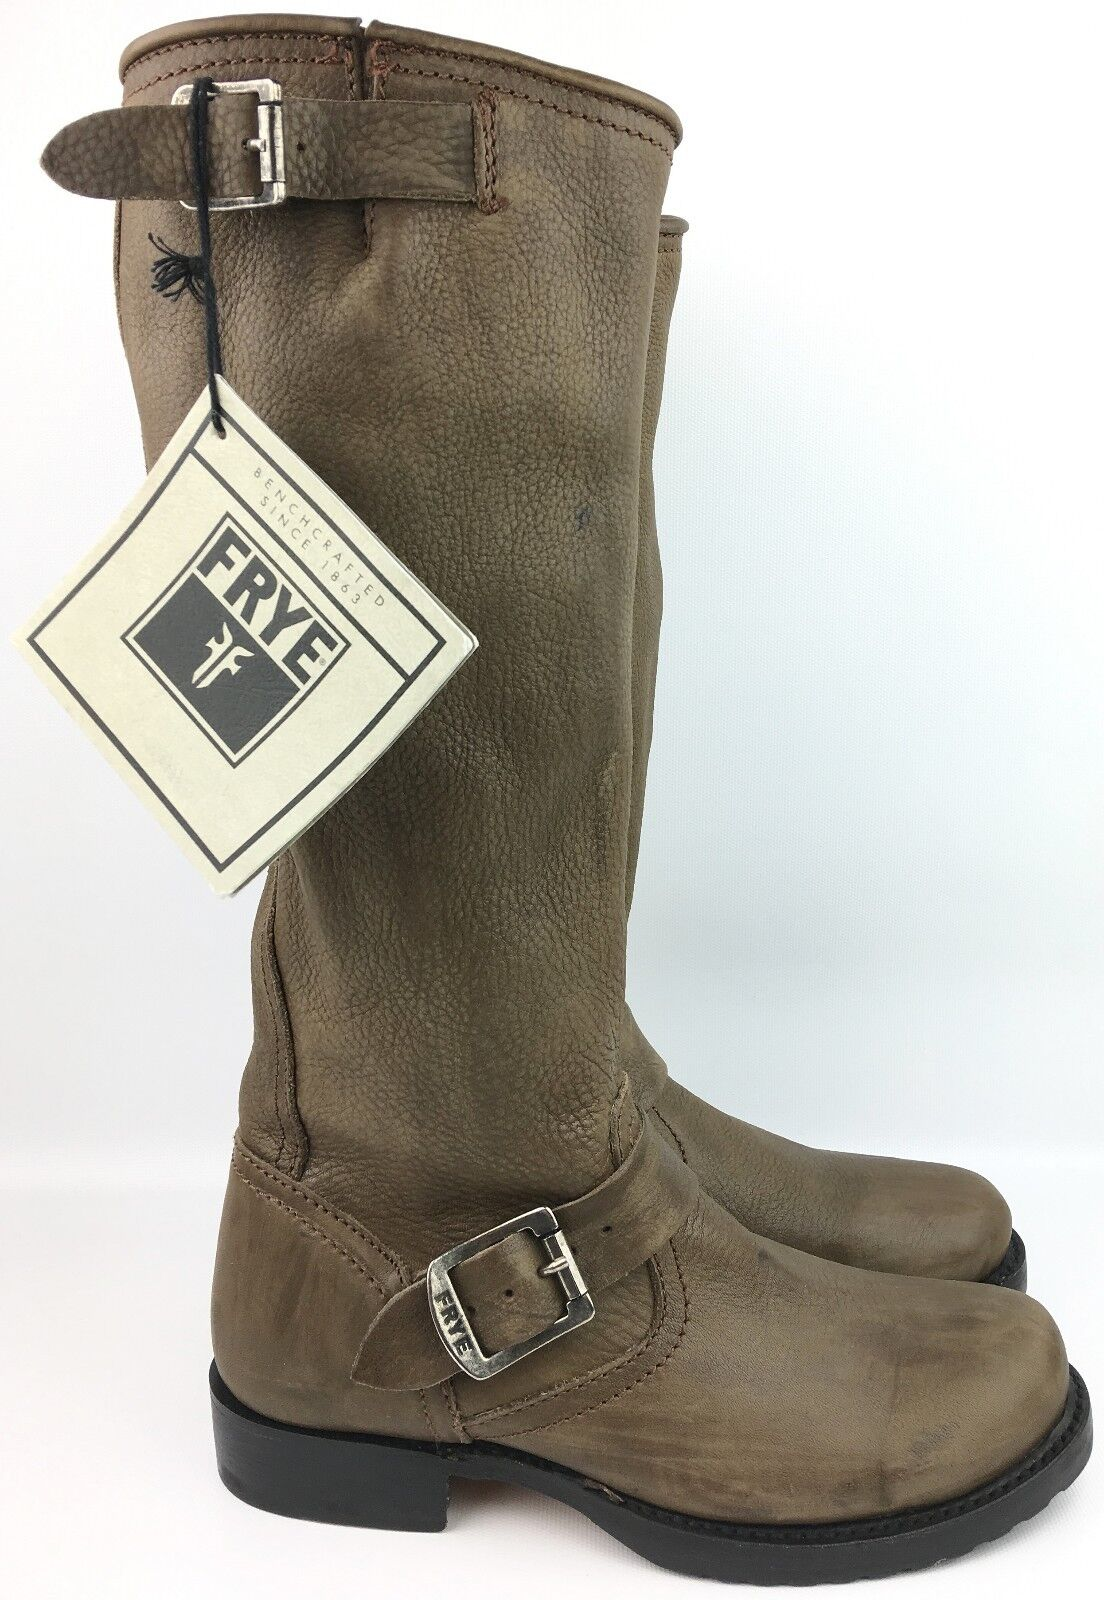 Frye Veronica Slouch Charcoal Vintage Tumbled Leather Boots 77618 sz  US 5.5